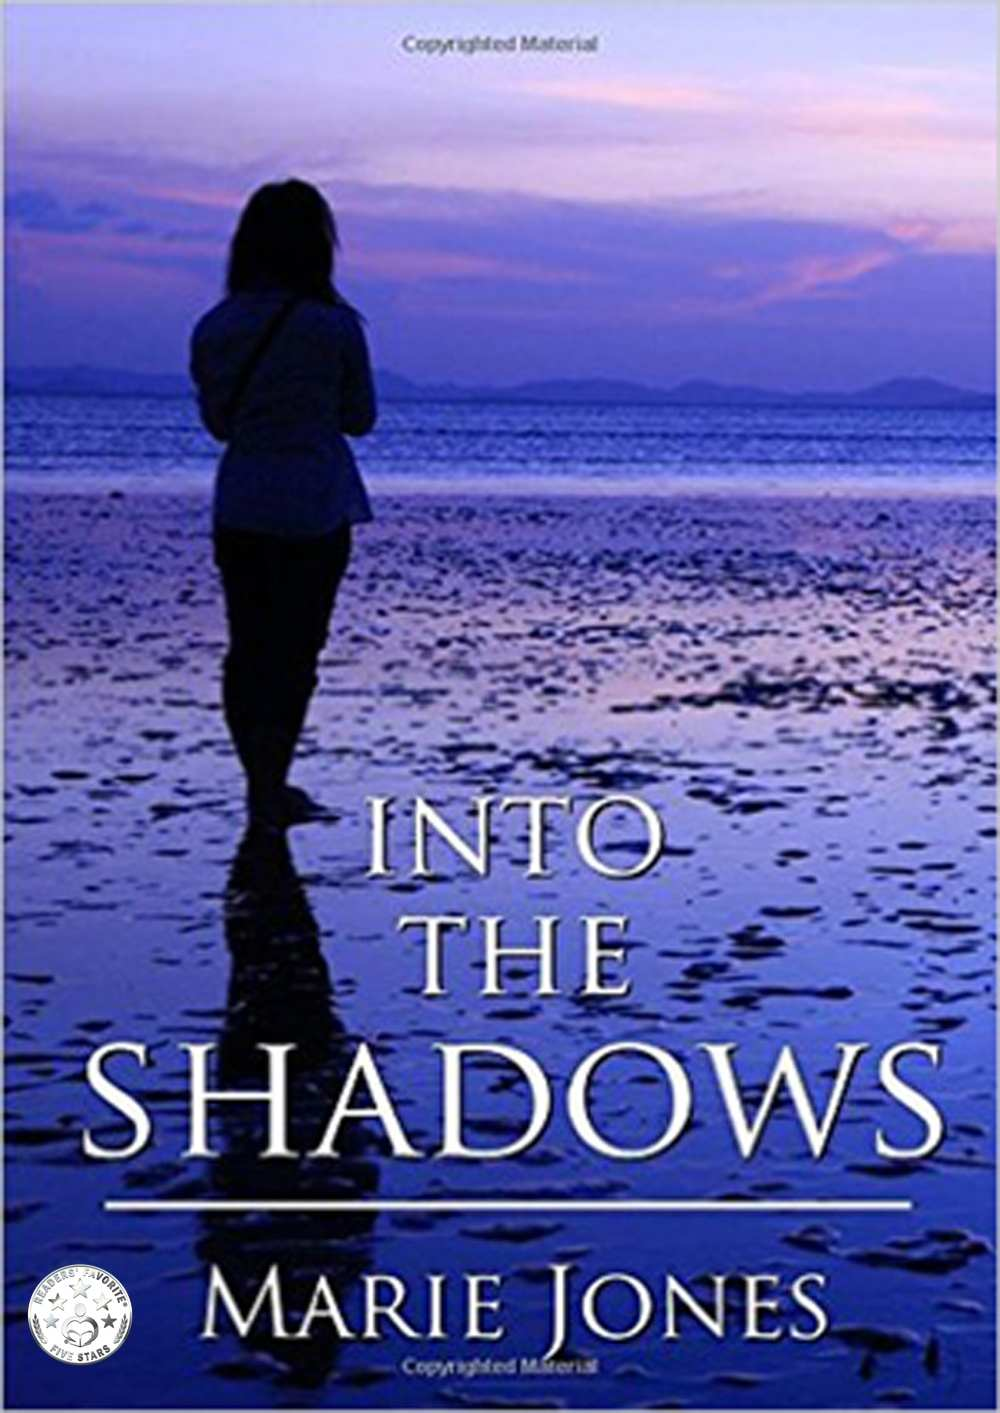 Cover image for Into The Shadows  *** NUMBER 1 BOOK ***: A romantic suspense with an edge of mystery